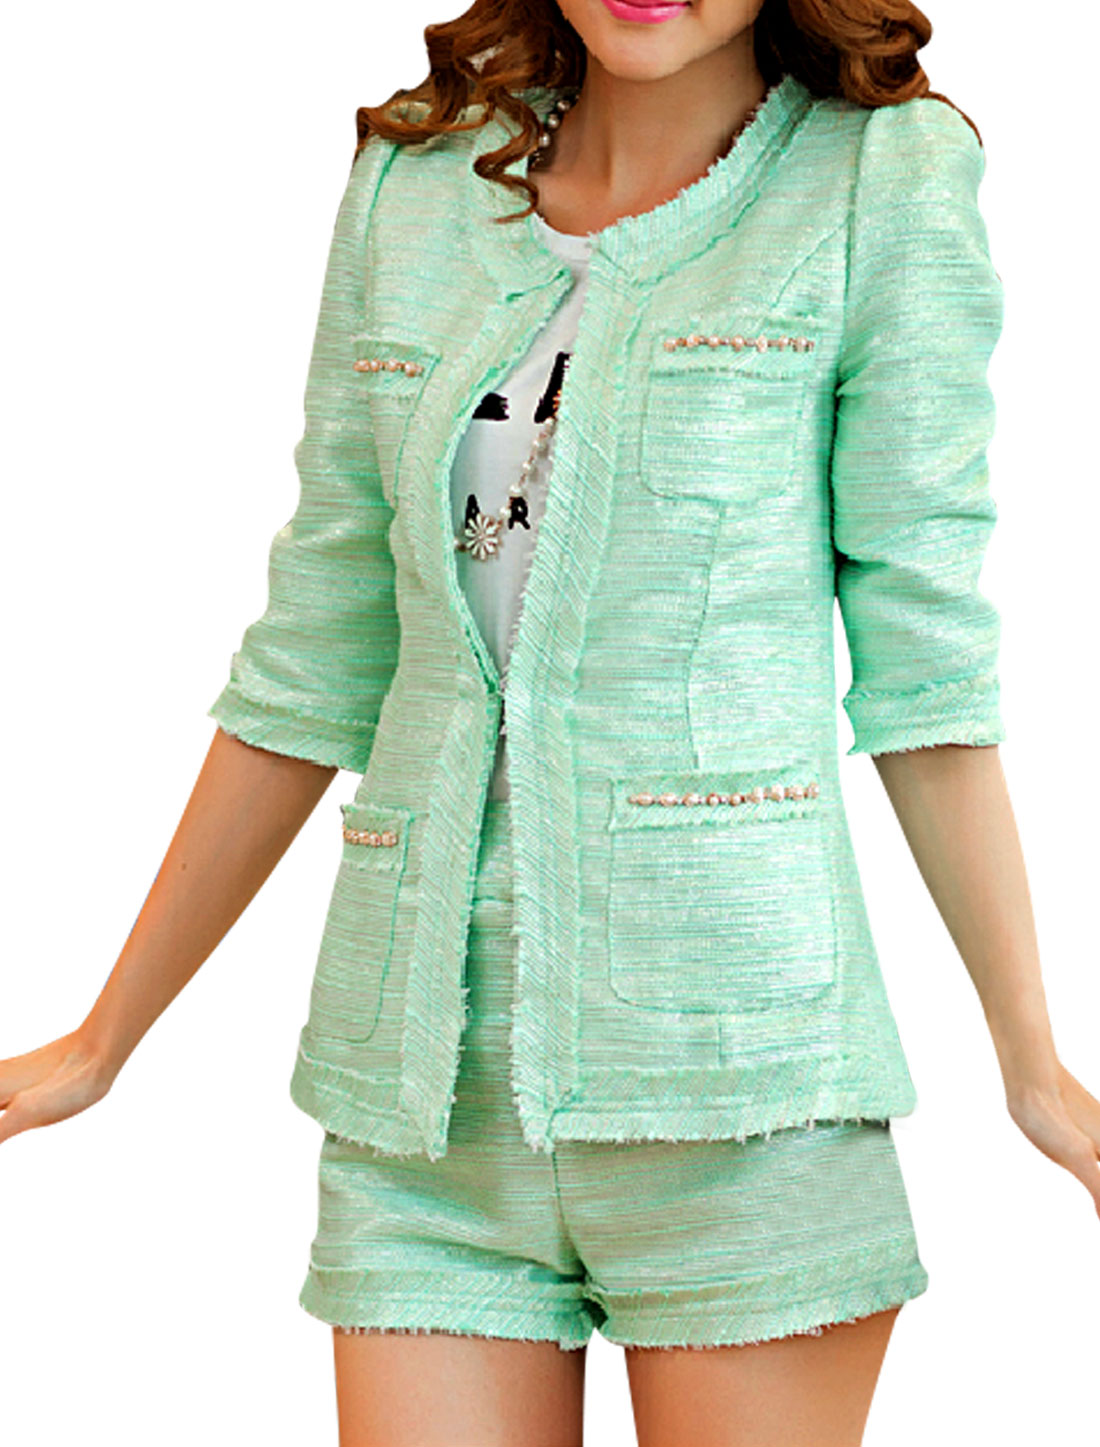 Women's Mint Open-front Blazer w High Waist Shorts Two piece Set XS